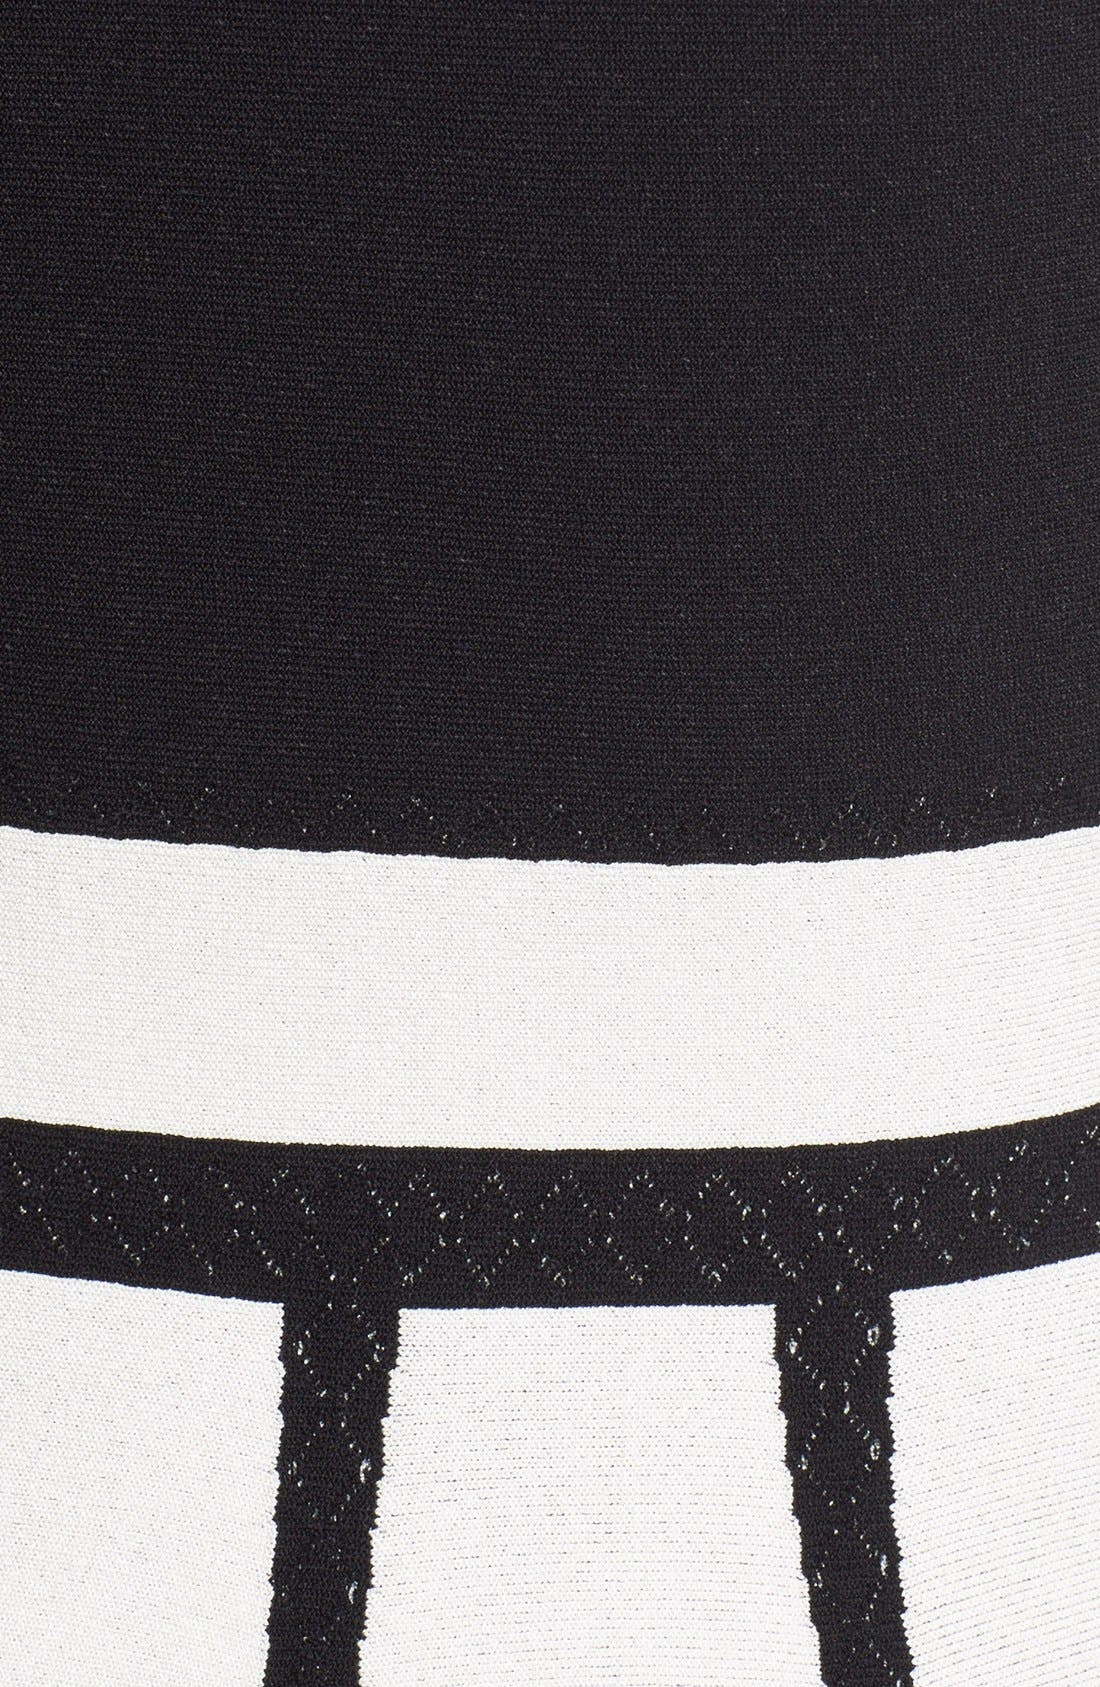 Intarsia Knit Fit & Flare Dress,                             Alternate thumbnail 2, color,                             BLACK/ WHITE